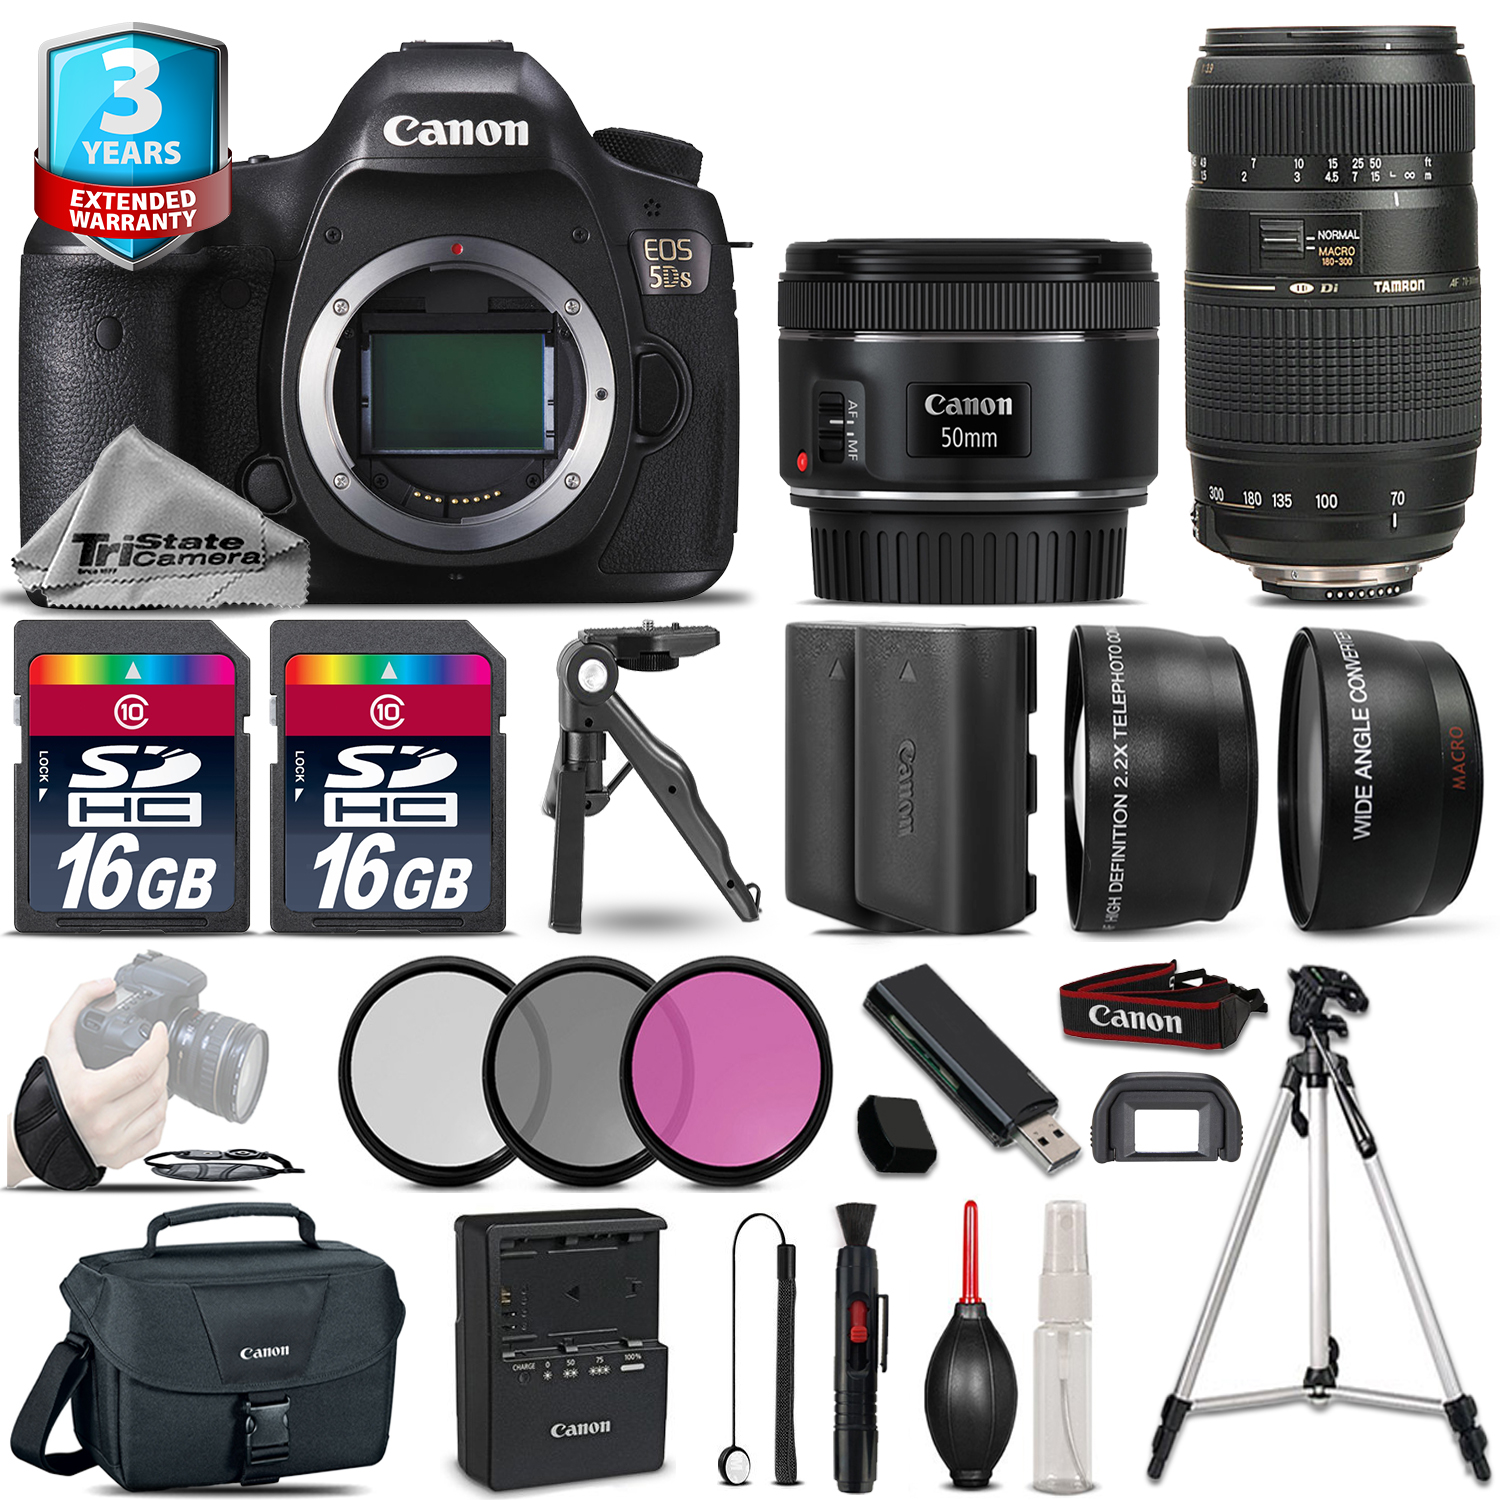 EOS 5DS Camera + 50mm 1.8 & 70-300mm + Extra Battery + 2yr Warranty - 32GB *FREE SHIPPING*